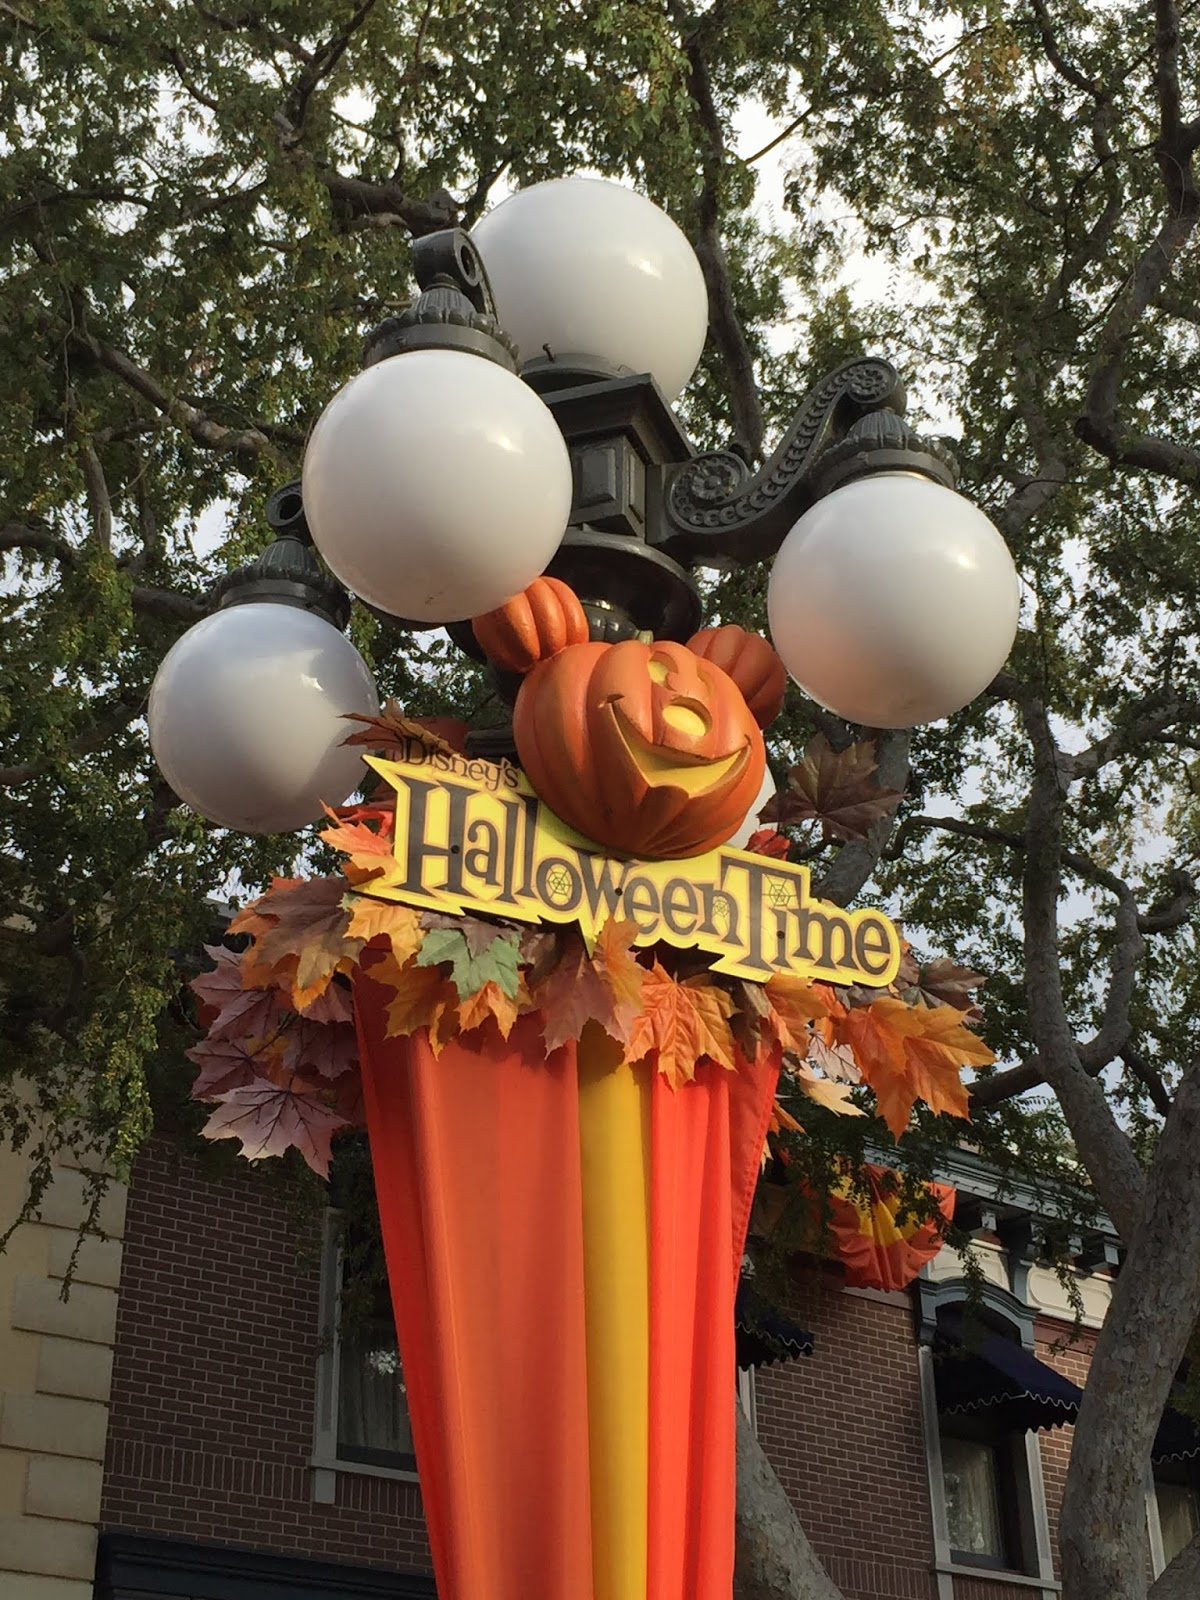 laura's miscellaneous musings: today at disneyland: halloween time 2018